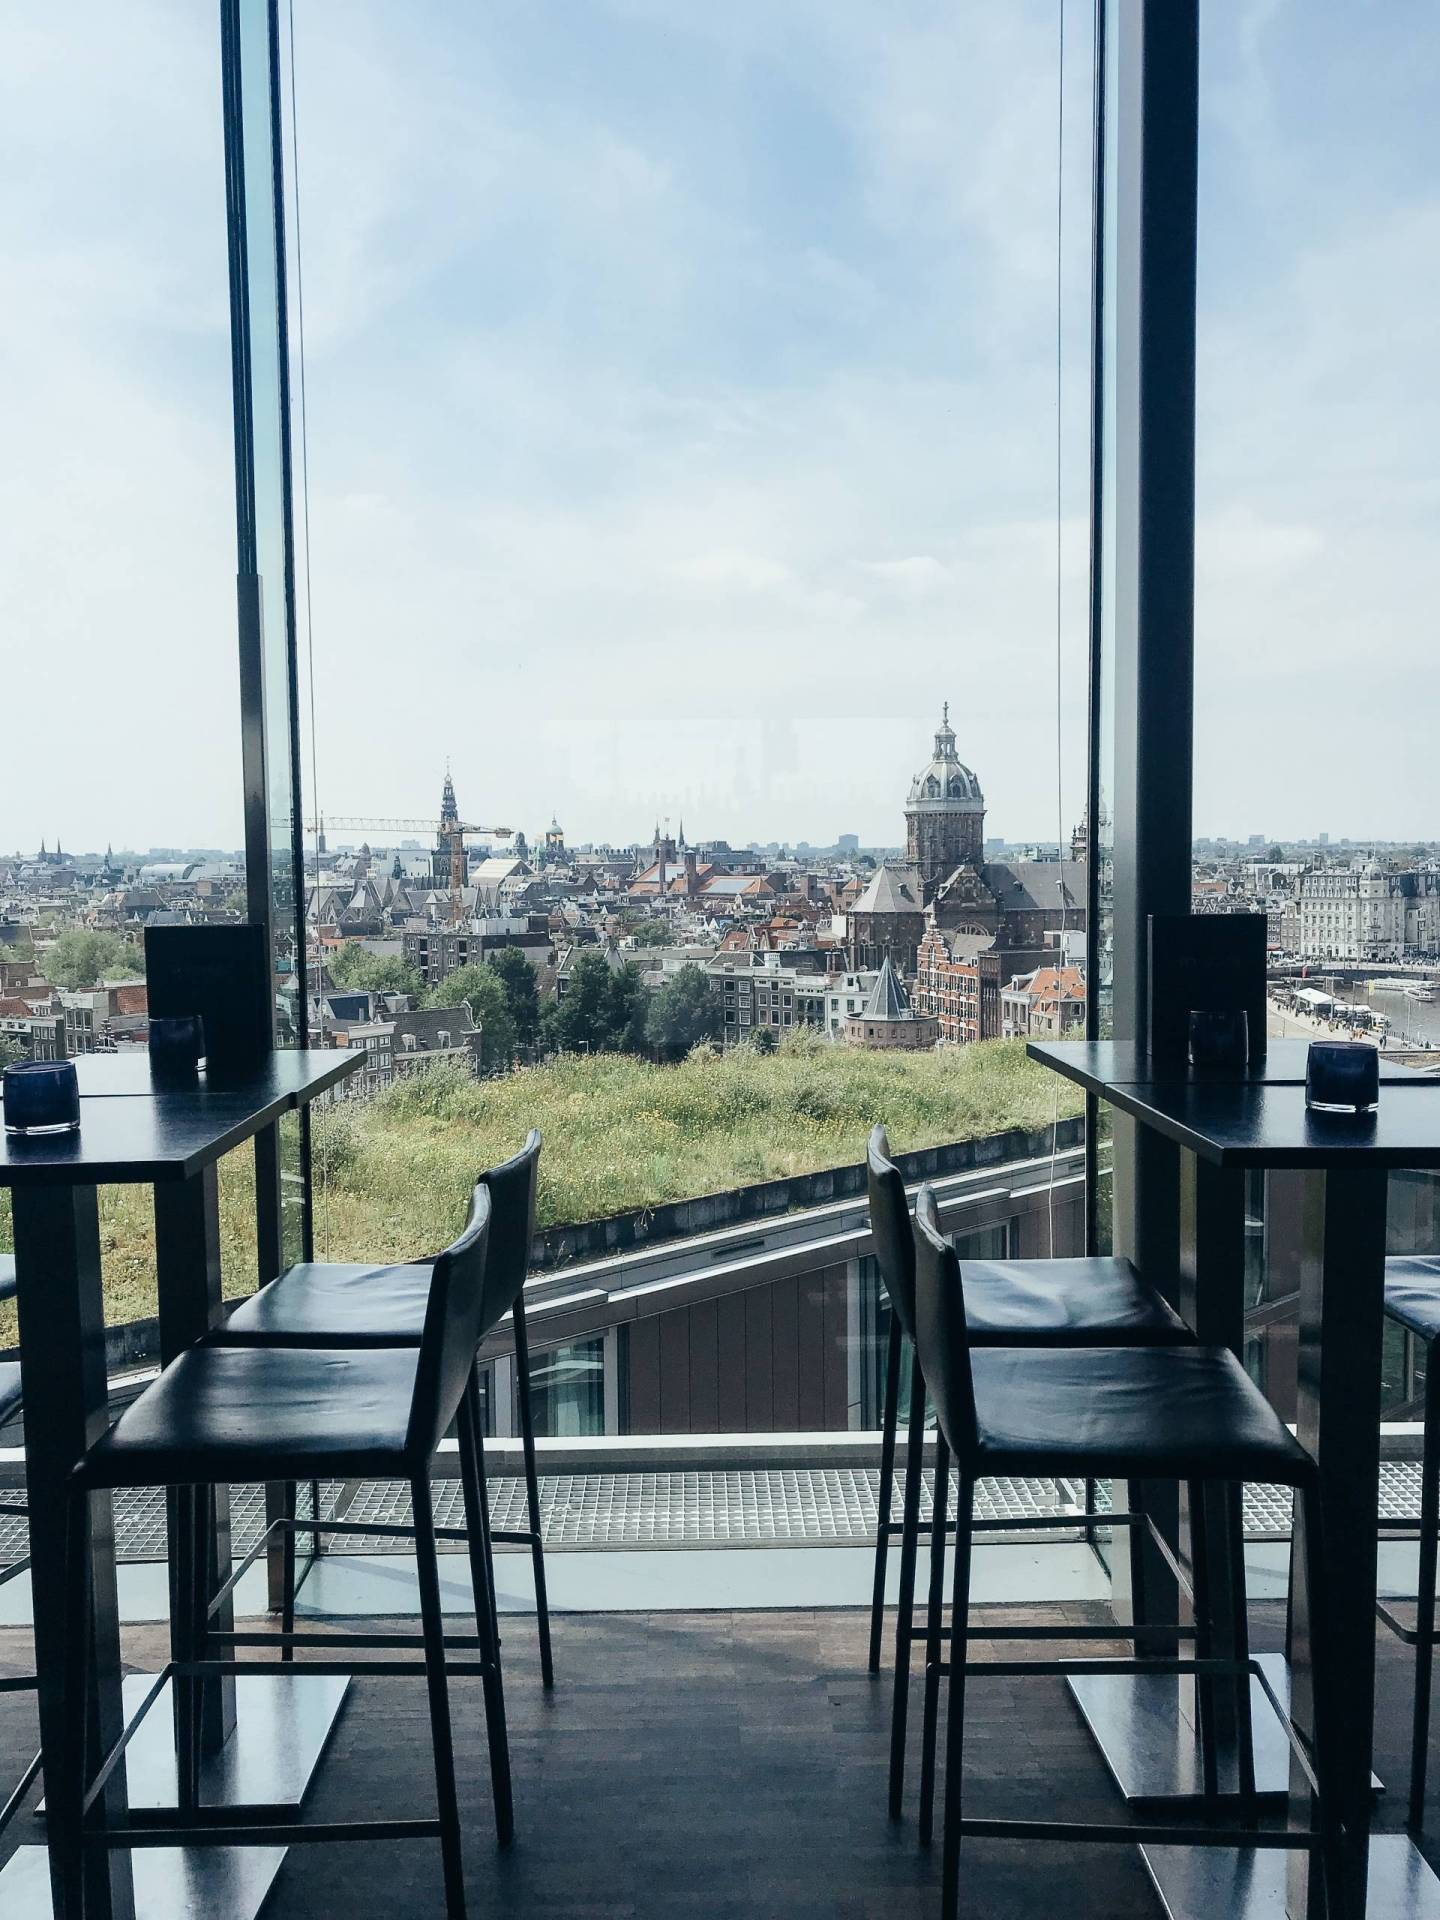 While the drinks may have been crazy overpriced, there's no denying that SkyLounge has one of the best aerial views over Amsterdam. However, click through for my pick of the place with the best view with very reasonable prices!